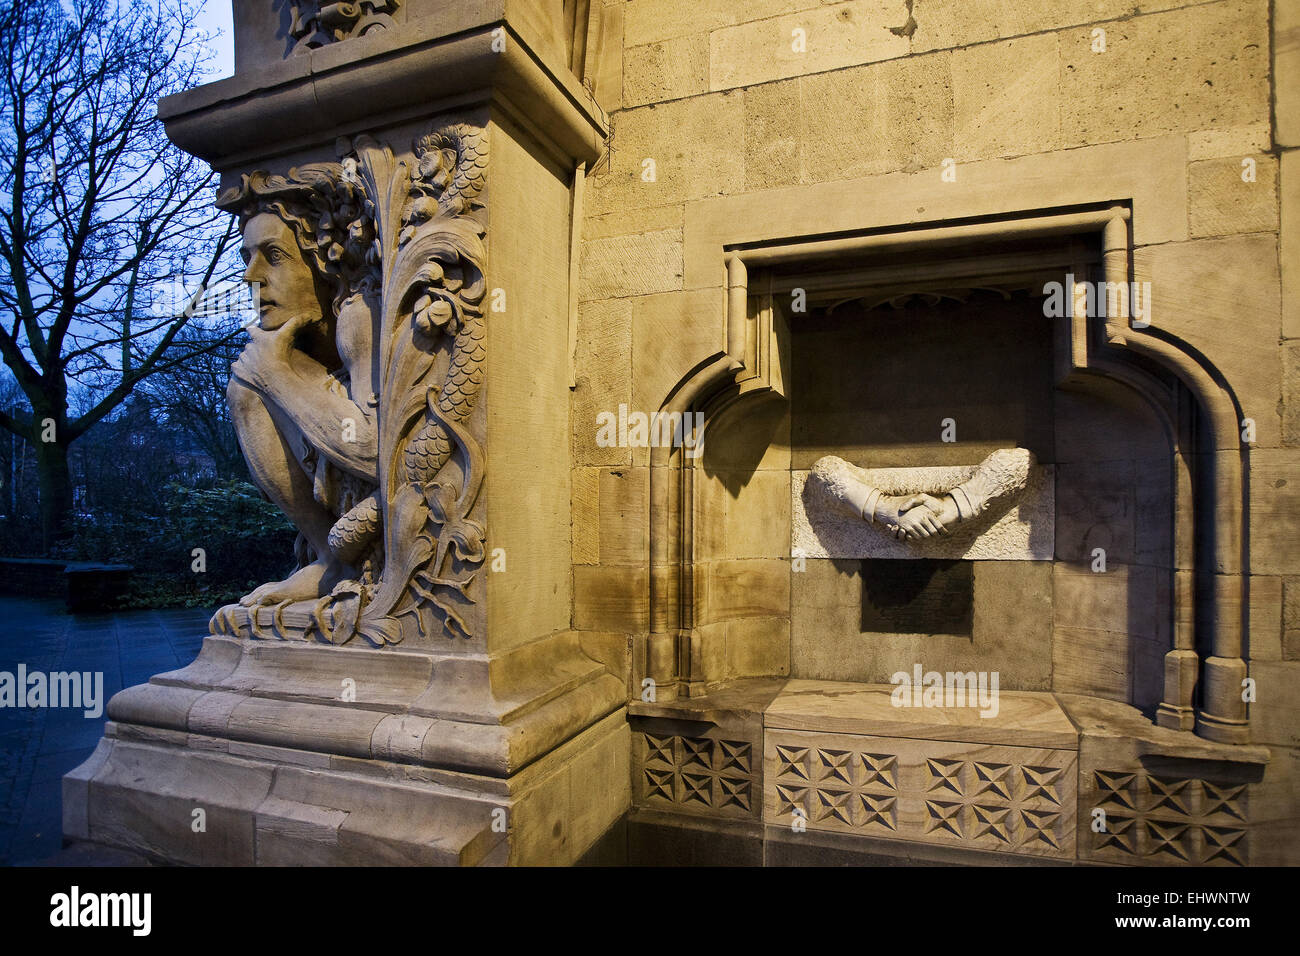 Detail City Hall, Duisburg, Germany. - Stock Image